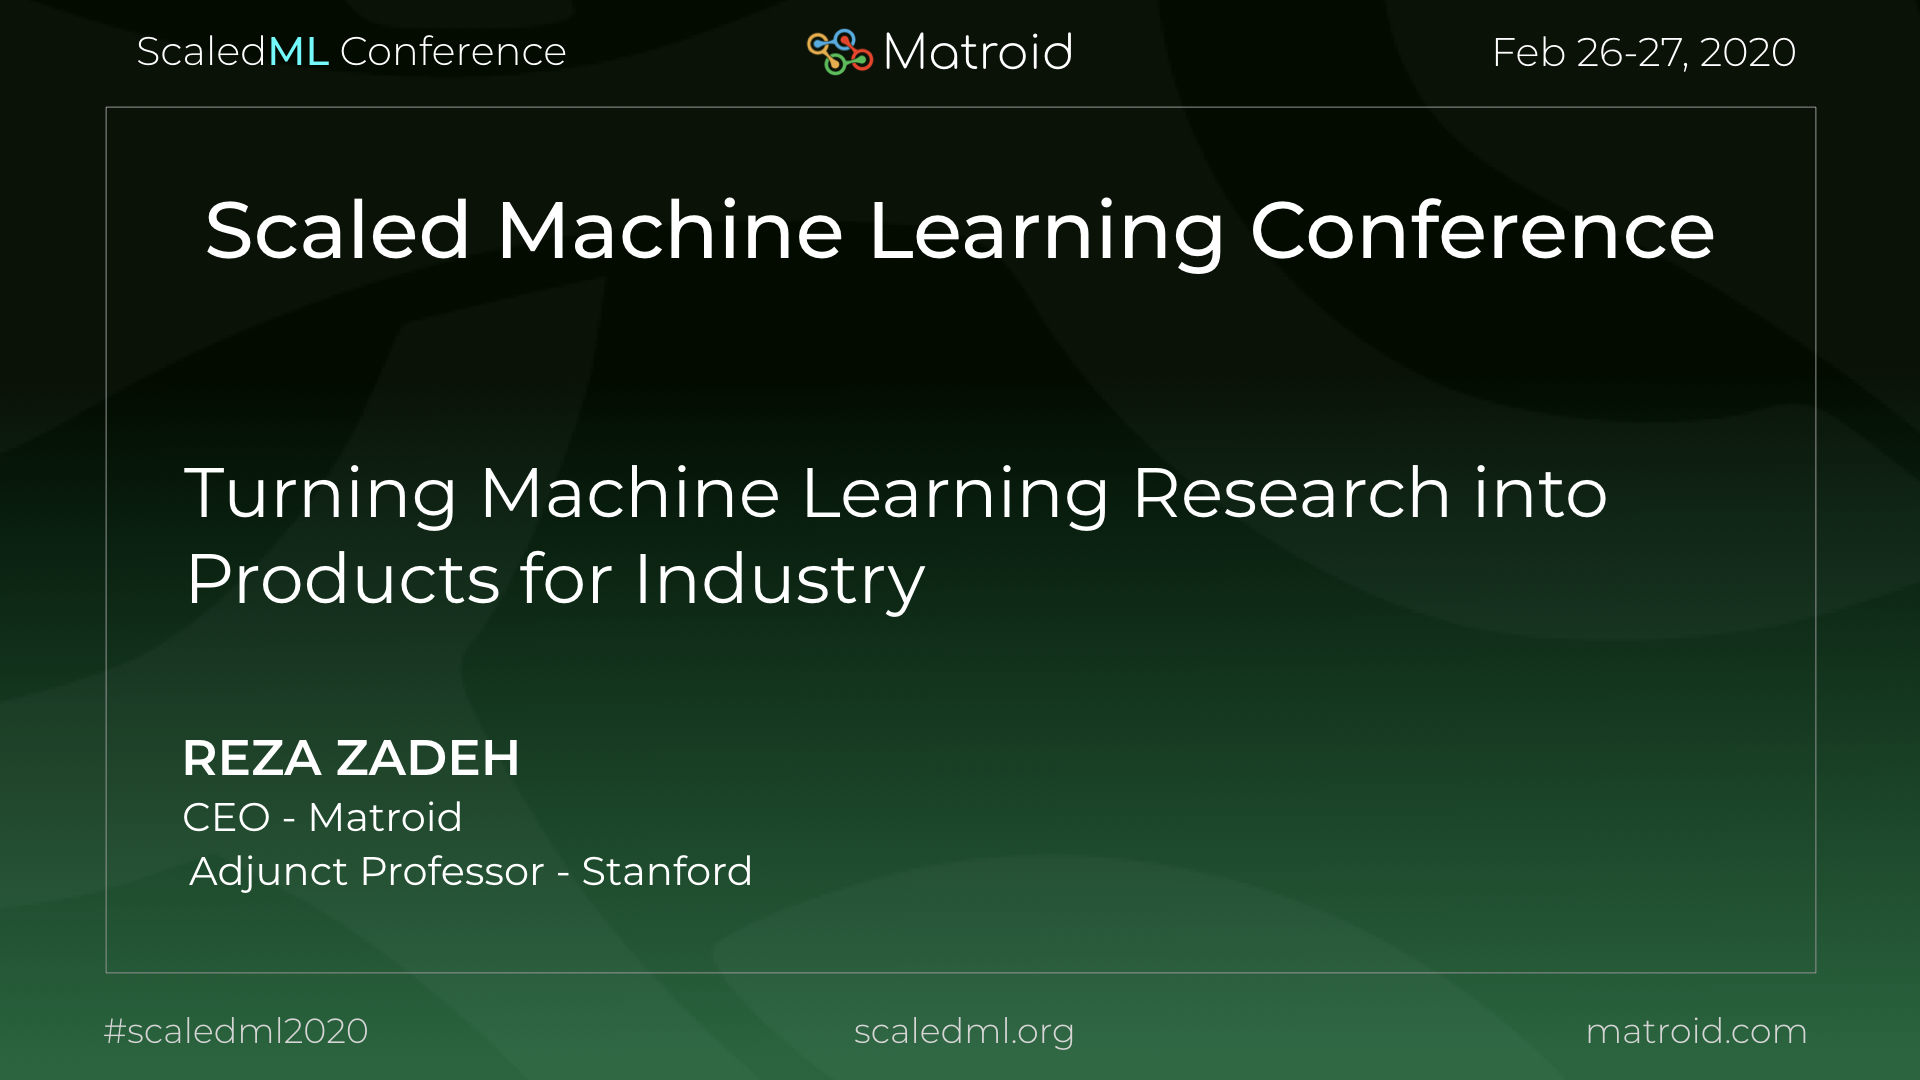 Reza Zadeh Matroid ScaledML Conference TPU CPU GPU Computer Vision AI Artificial Intelligence Machine Learning